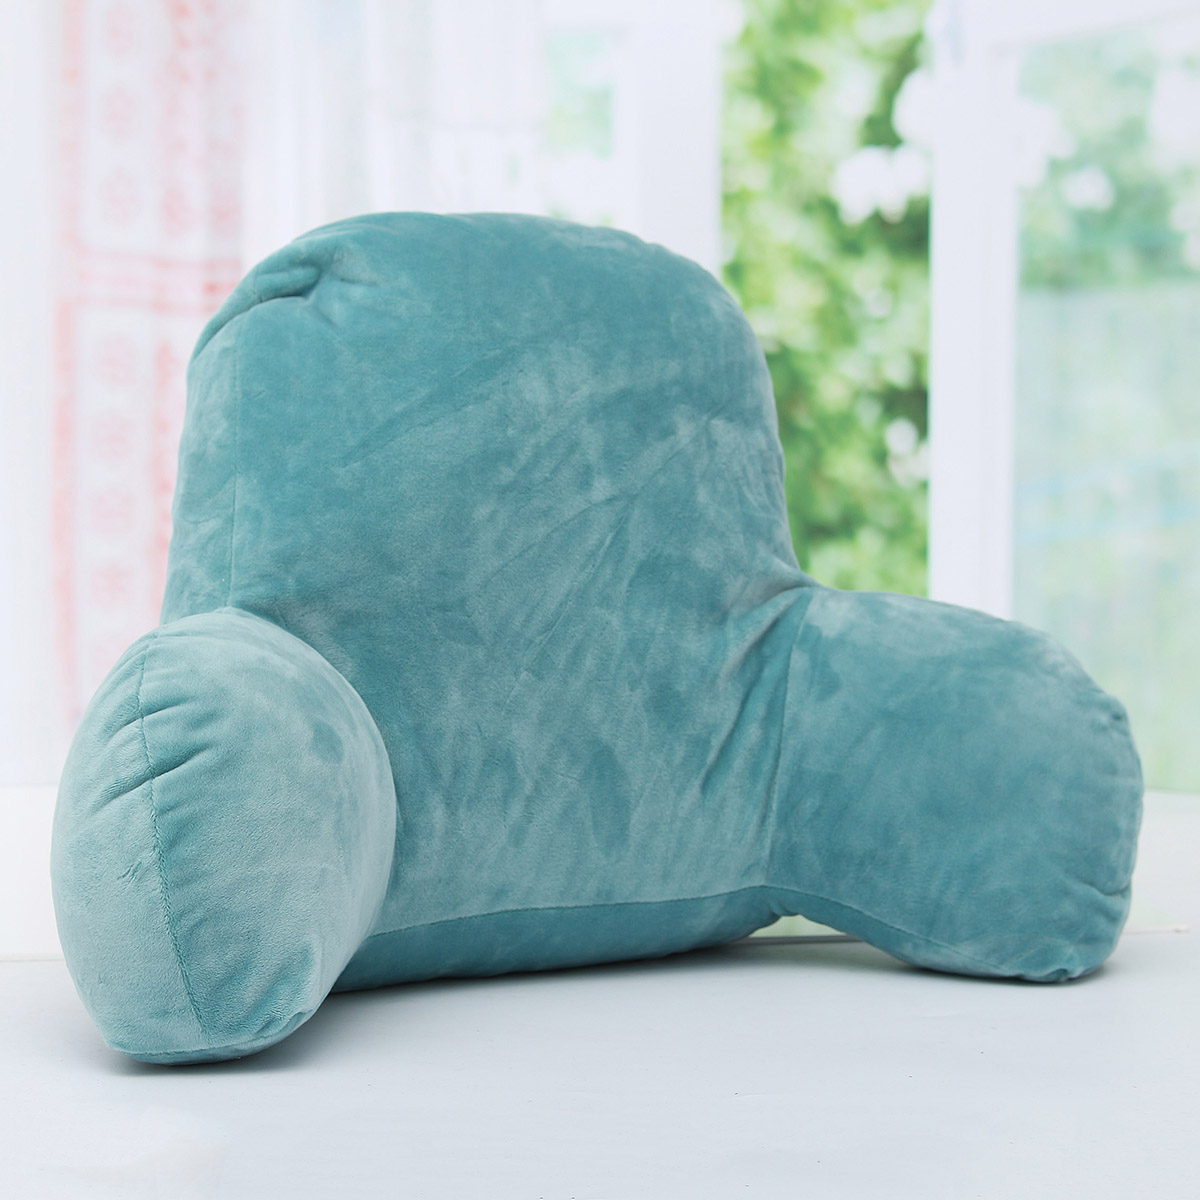 3 Colors Lounger Pillow Cushion w/ Arms Car Seat Bed Reading Rest Back Support Watching TV Relax Backrest for Kids Children Gift